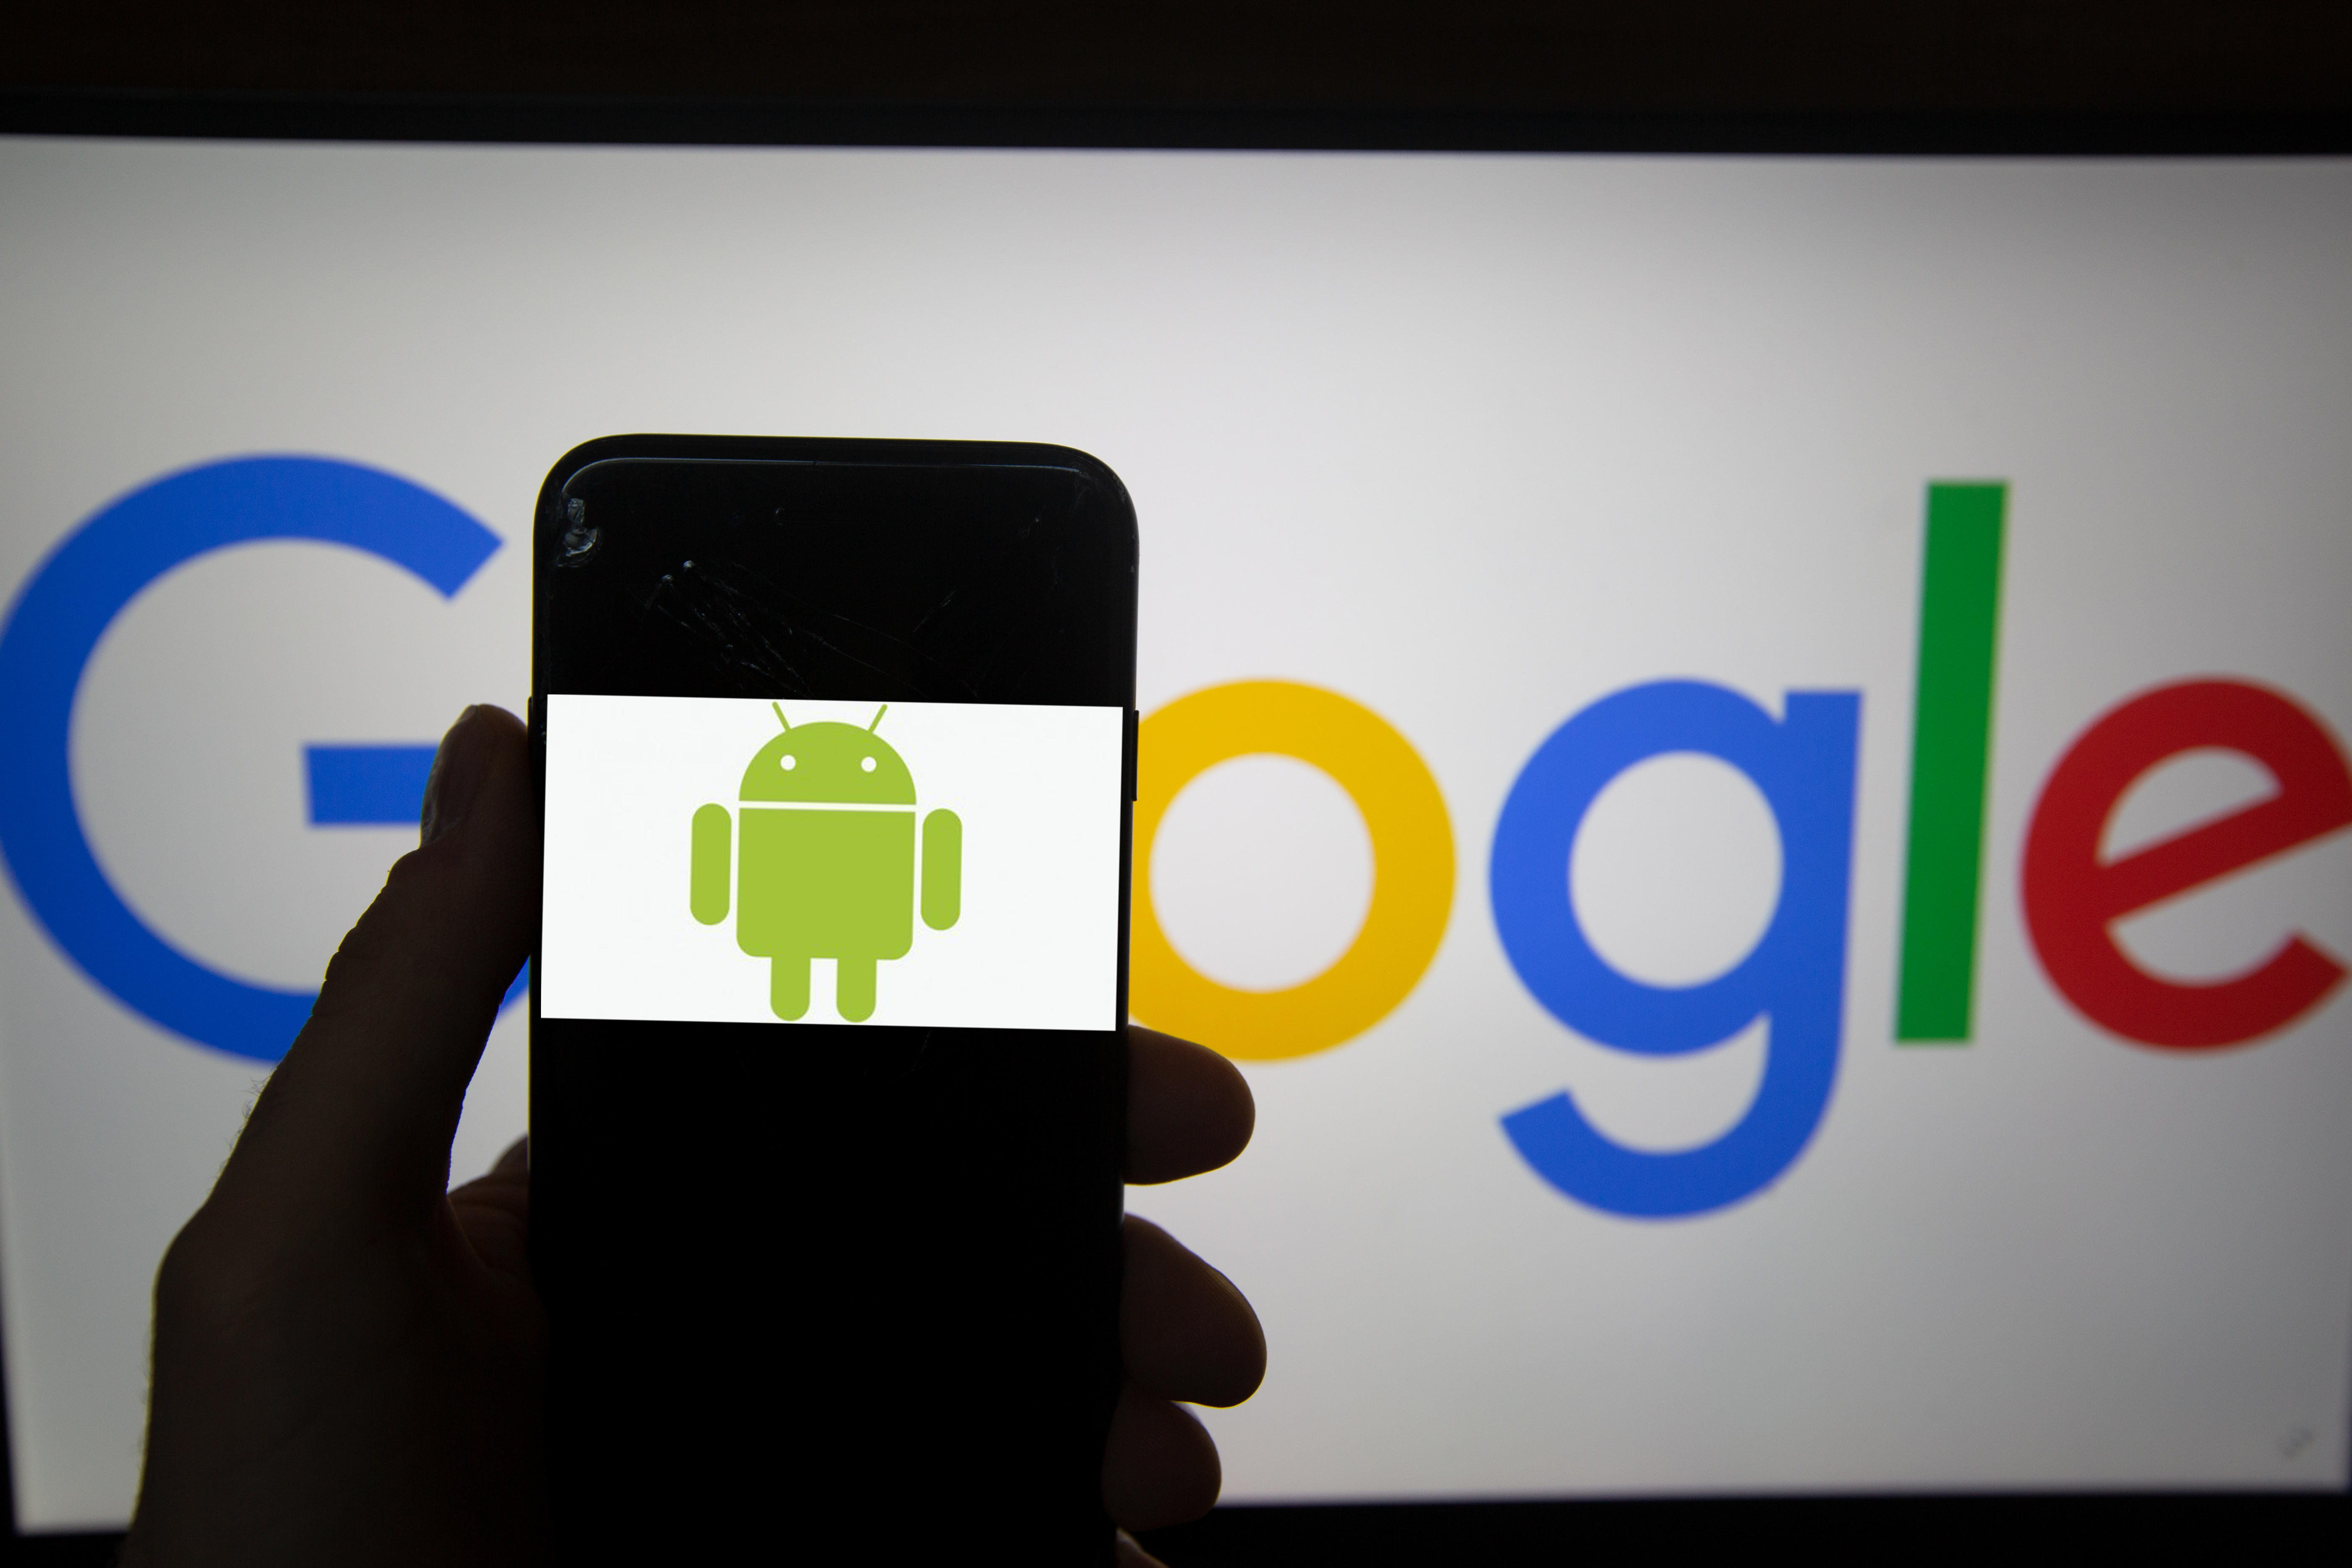 A mobile phone shows the Android logo in front of a computer monitor showing the Google logo.